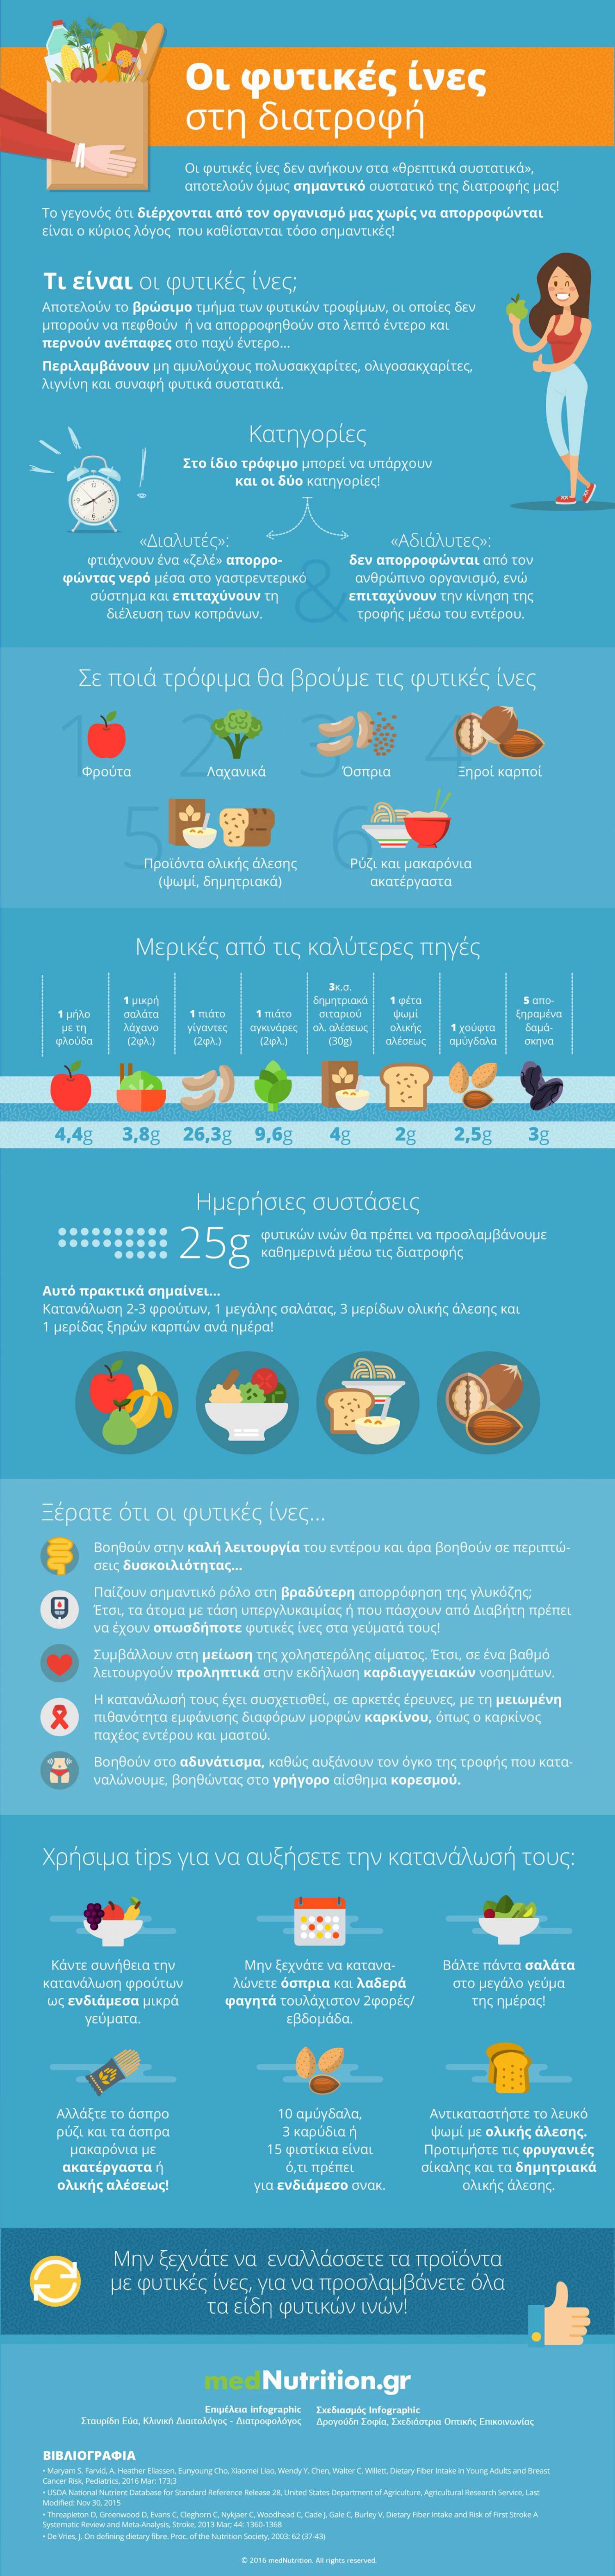 Do you get the dietary fibre you need? Infographic